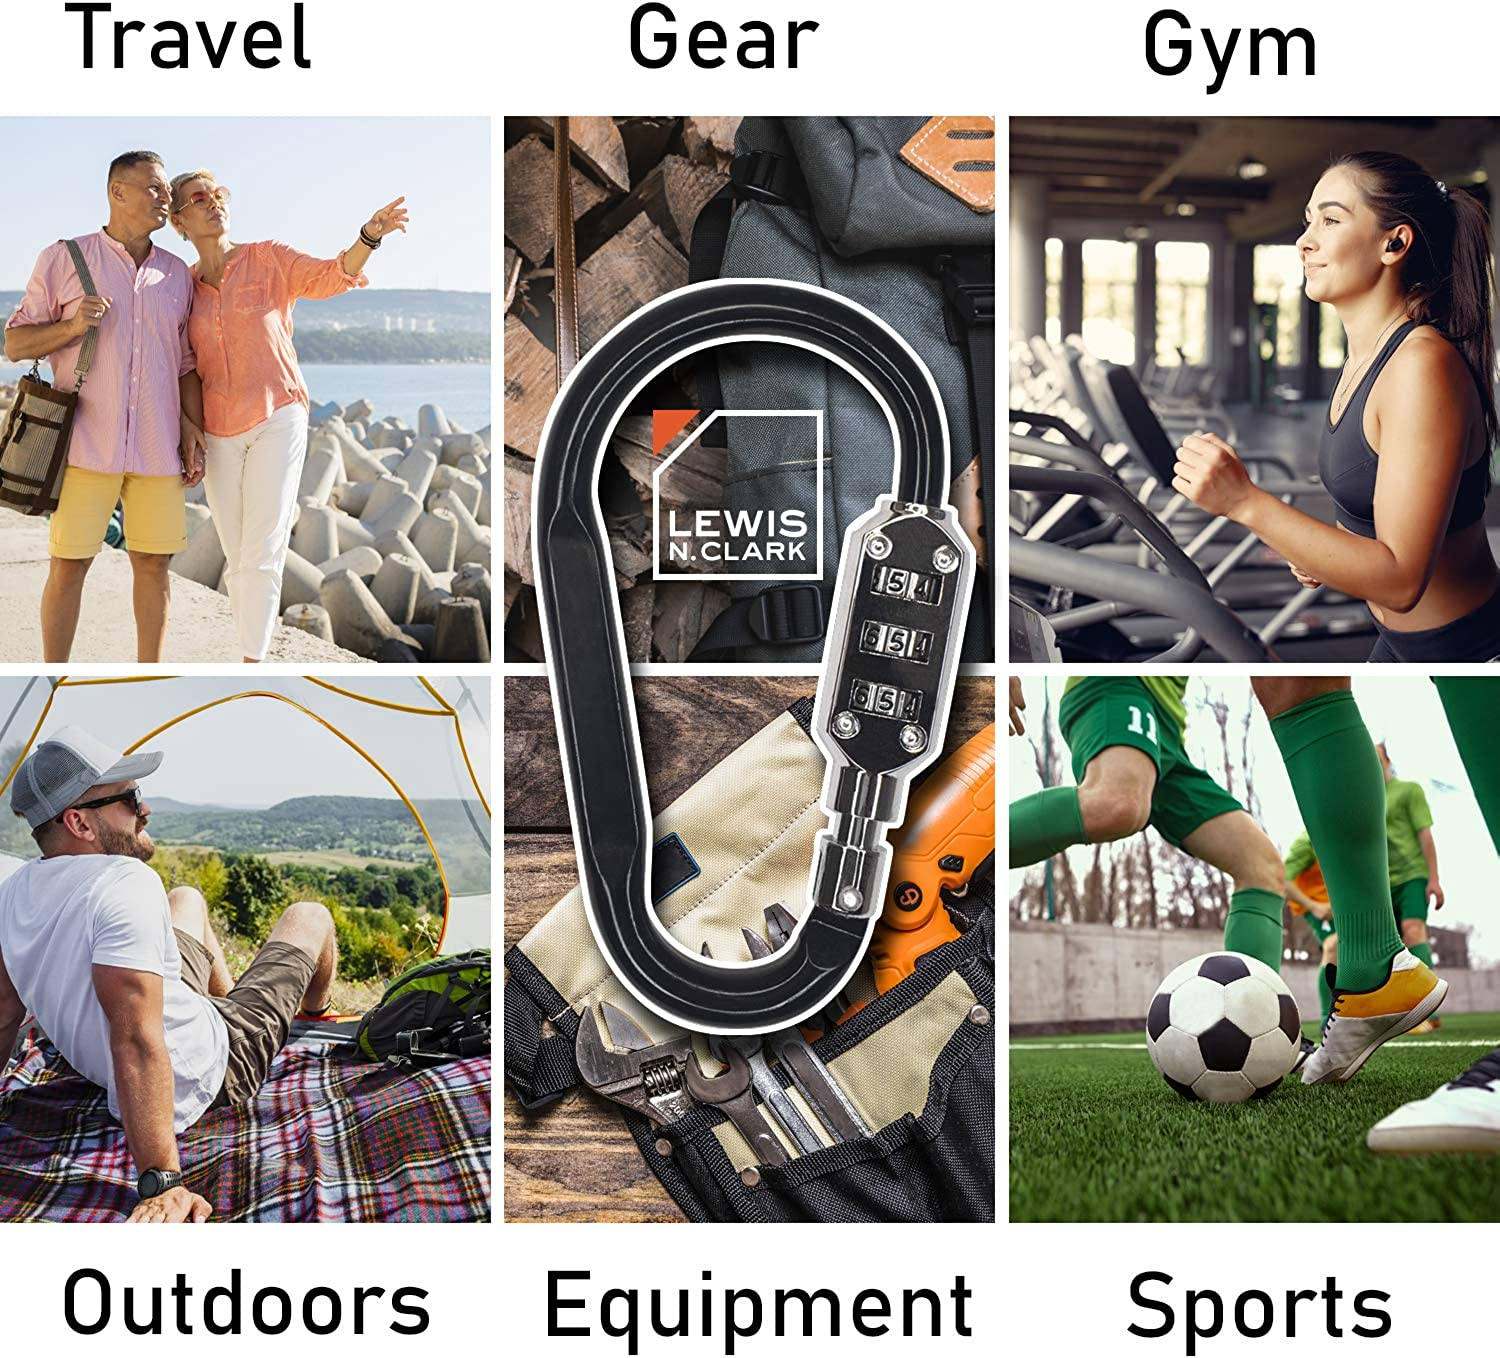 Backpack Keychain with Smooth Surface for No Clothing Lewis N Black or Luggage Snags Clark 3 Dial Carabiner Combination Lock 2-Pack